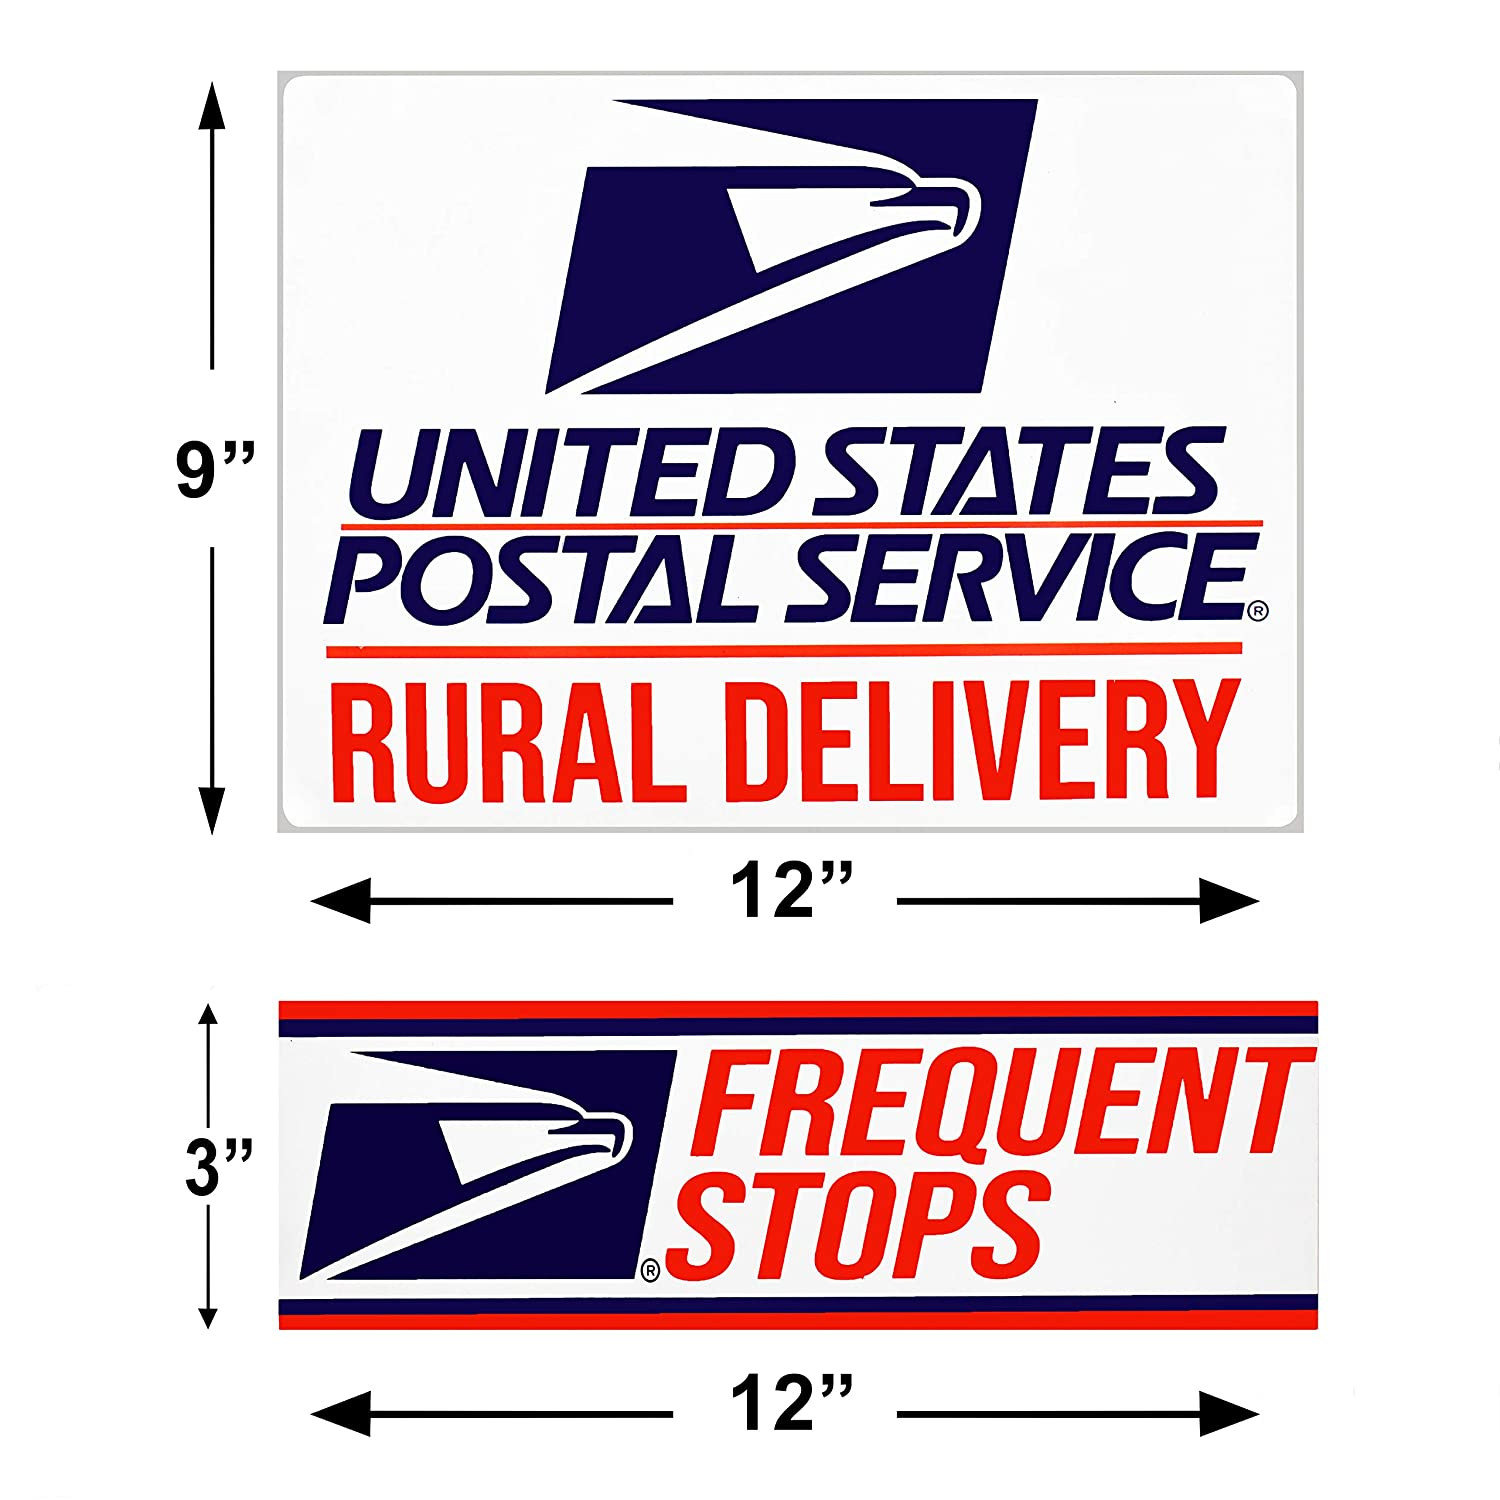 """Rural Delivery Magnetic Sign for U.S 3/"""" x 12/"""" included Safety Supply Mart Mail 9/"""" x 12/"""" with Frequent Stops Magnet"""